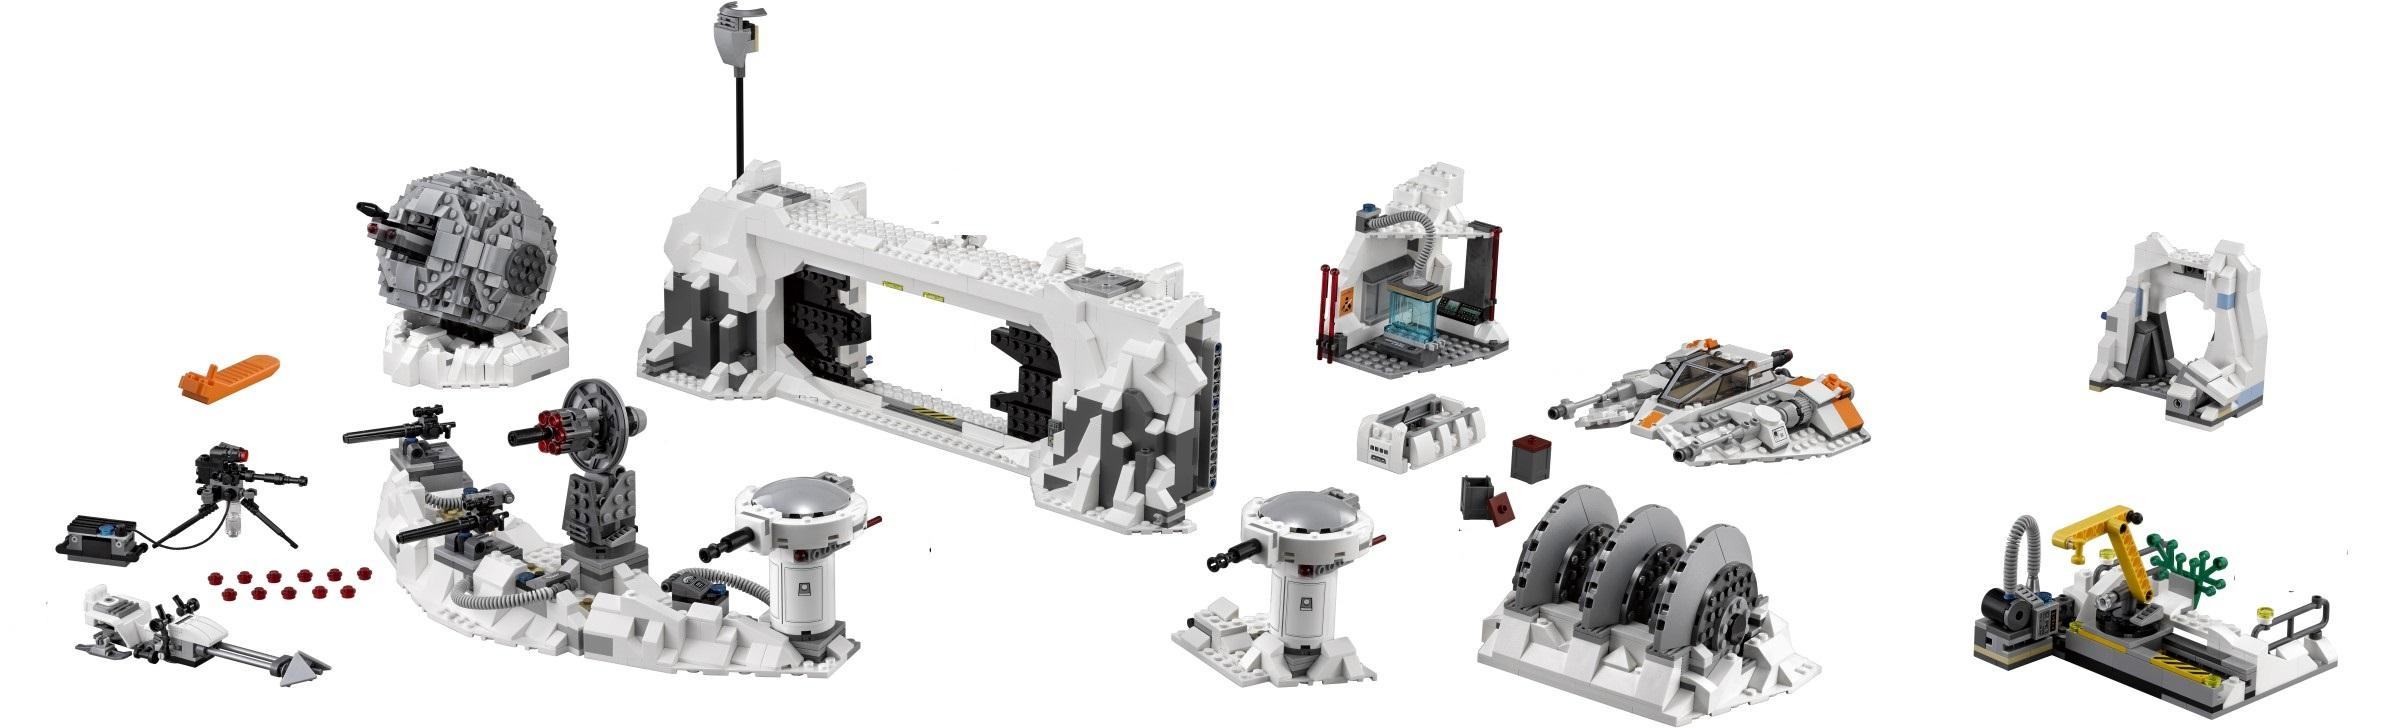 LEGO Star Wars Assault On Hoth Only NEW Split From 75098 (No Minifig)